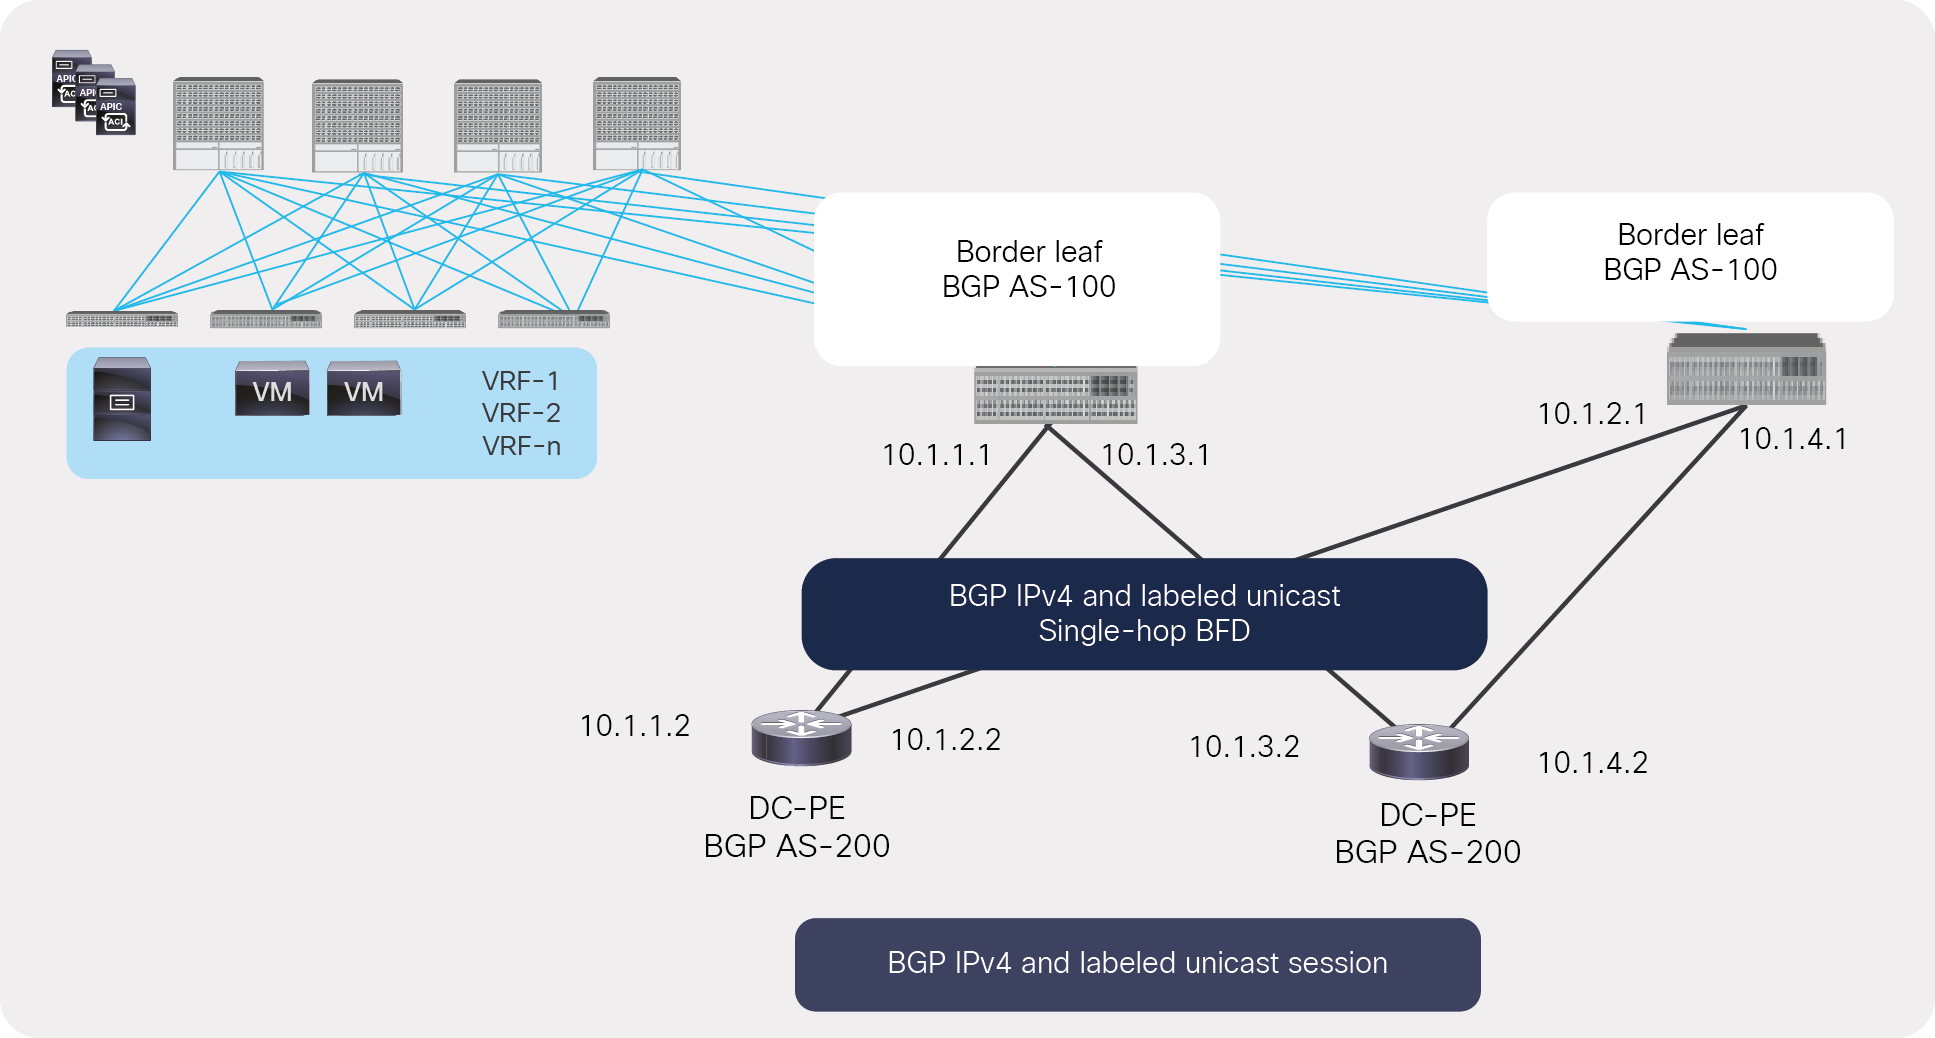 Underlay BGP LU and IPv4 sessions between an ACI border and a next-hop router with single-hop BFD